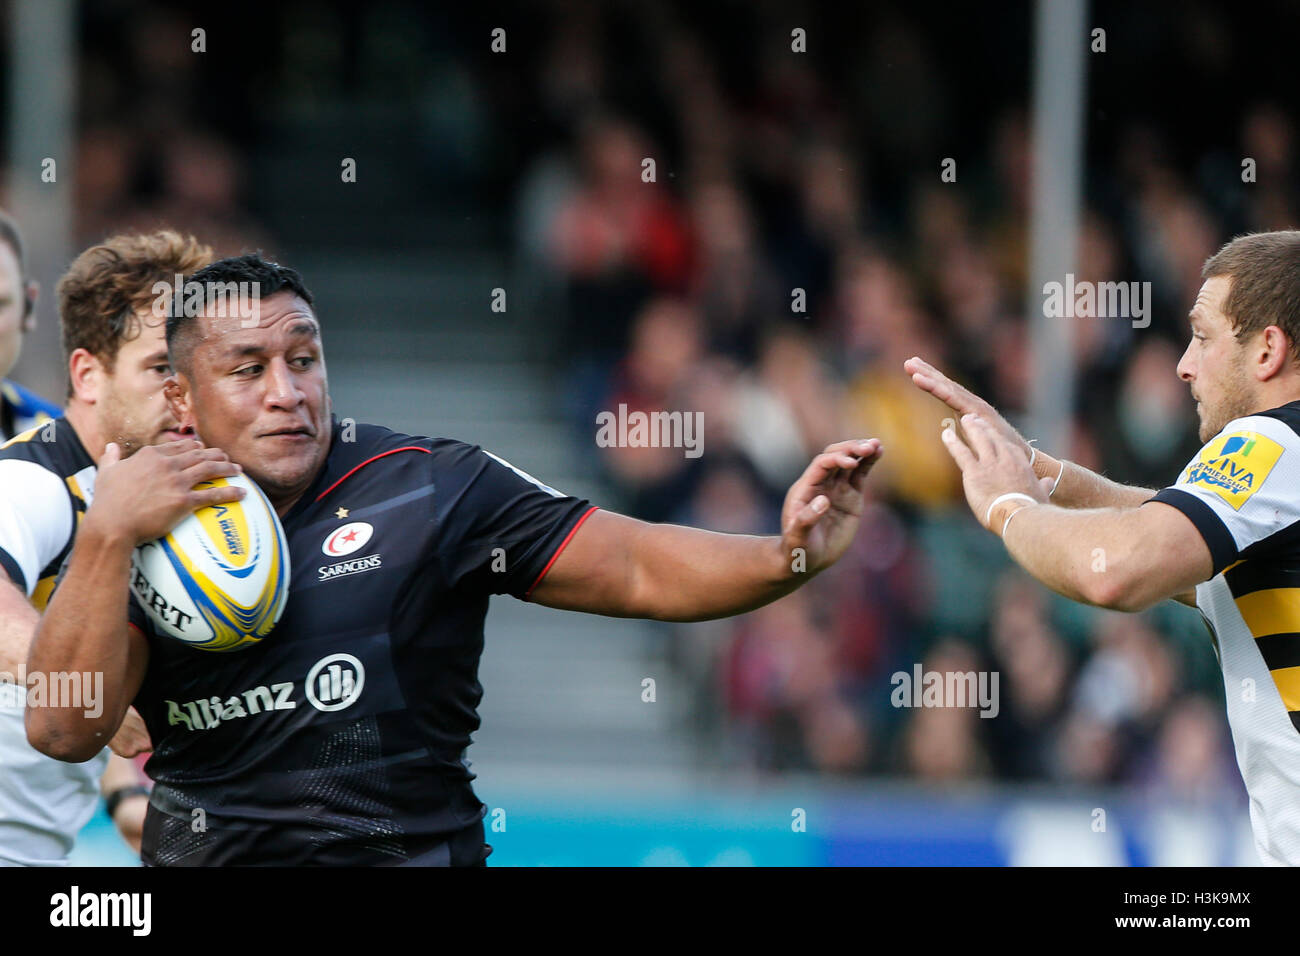 Barnet Copthall, London, UK. 09th Oct, 2016. Aviva Premiership Rugby. Saracens versus Wasps. Mako Vunipola of Saracens Stock Photo